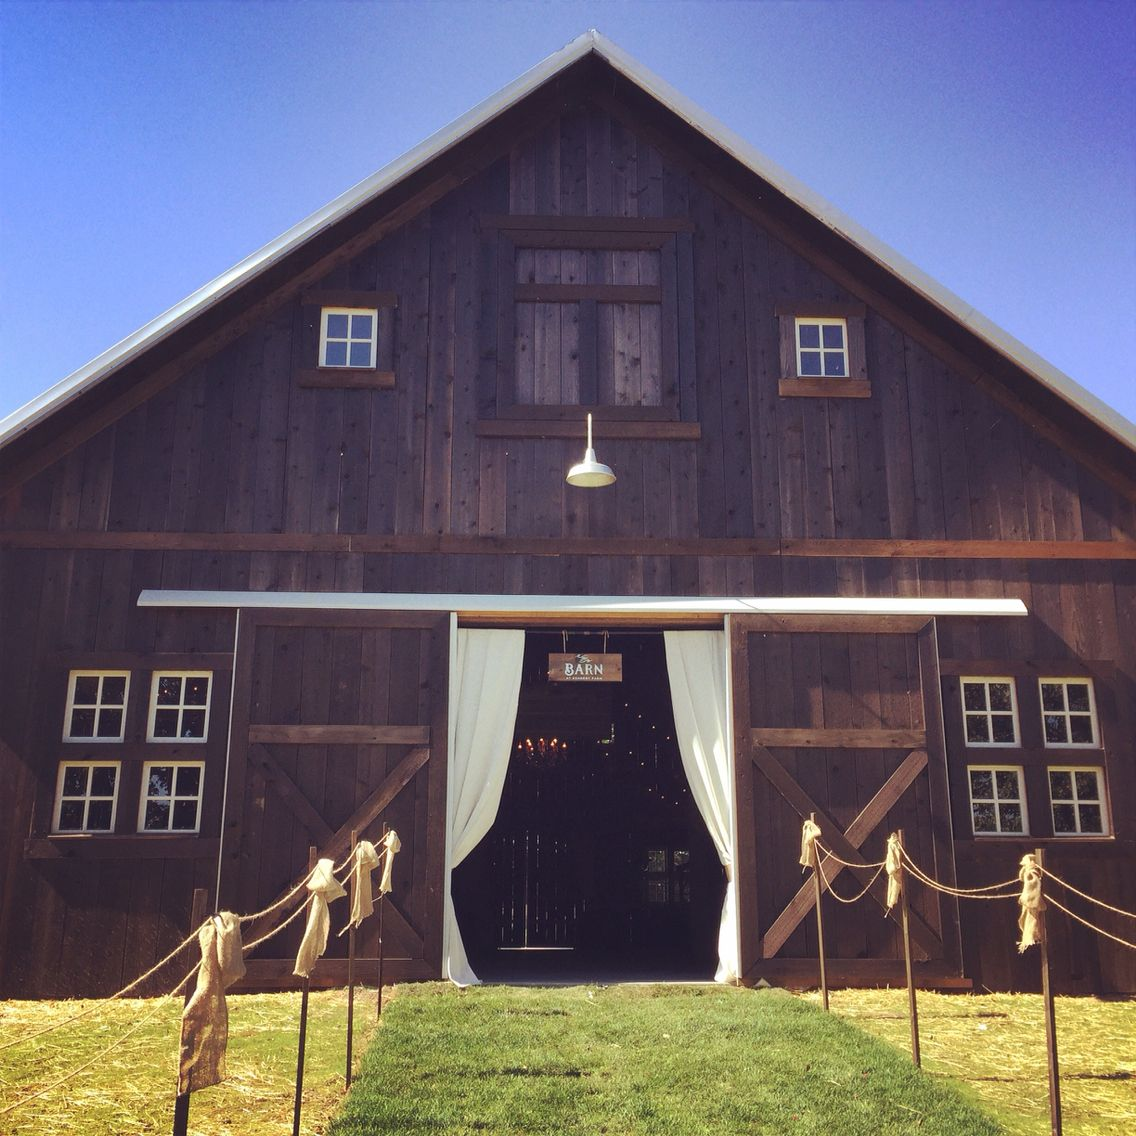 Indiana hendricks county lizton - The Barn At Kennedy Farms Is A Beautiful Location For Weddings And Meetings In Lizton